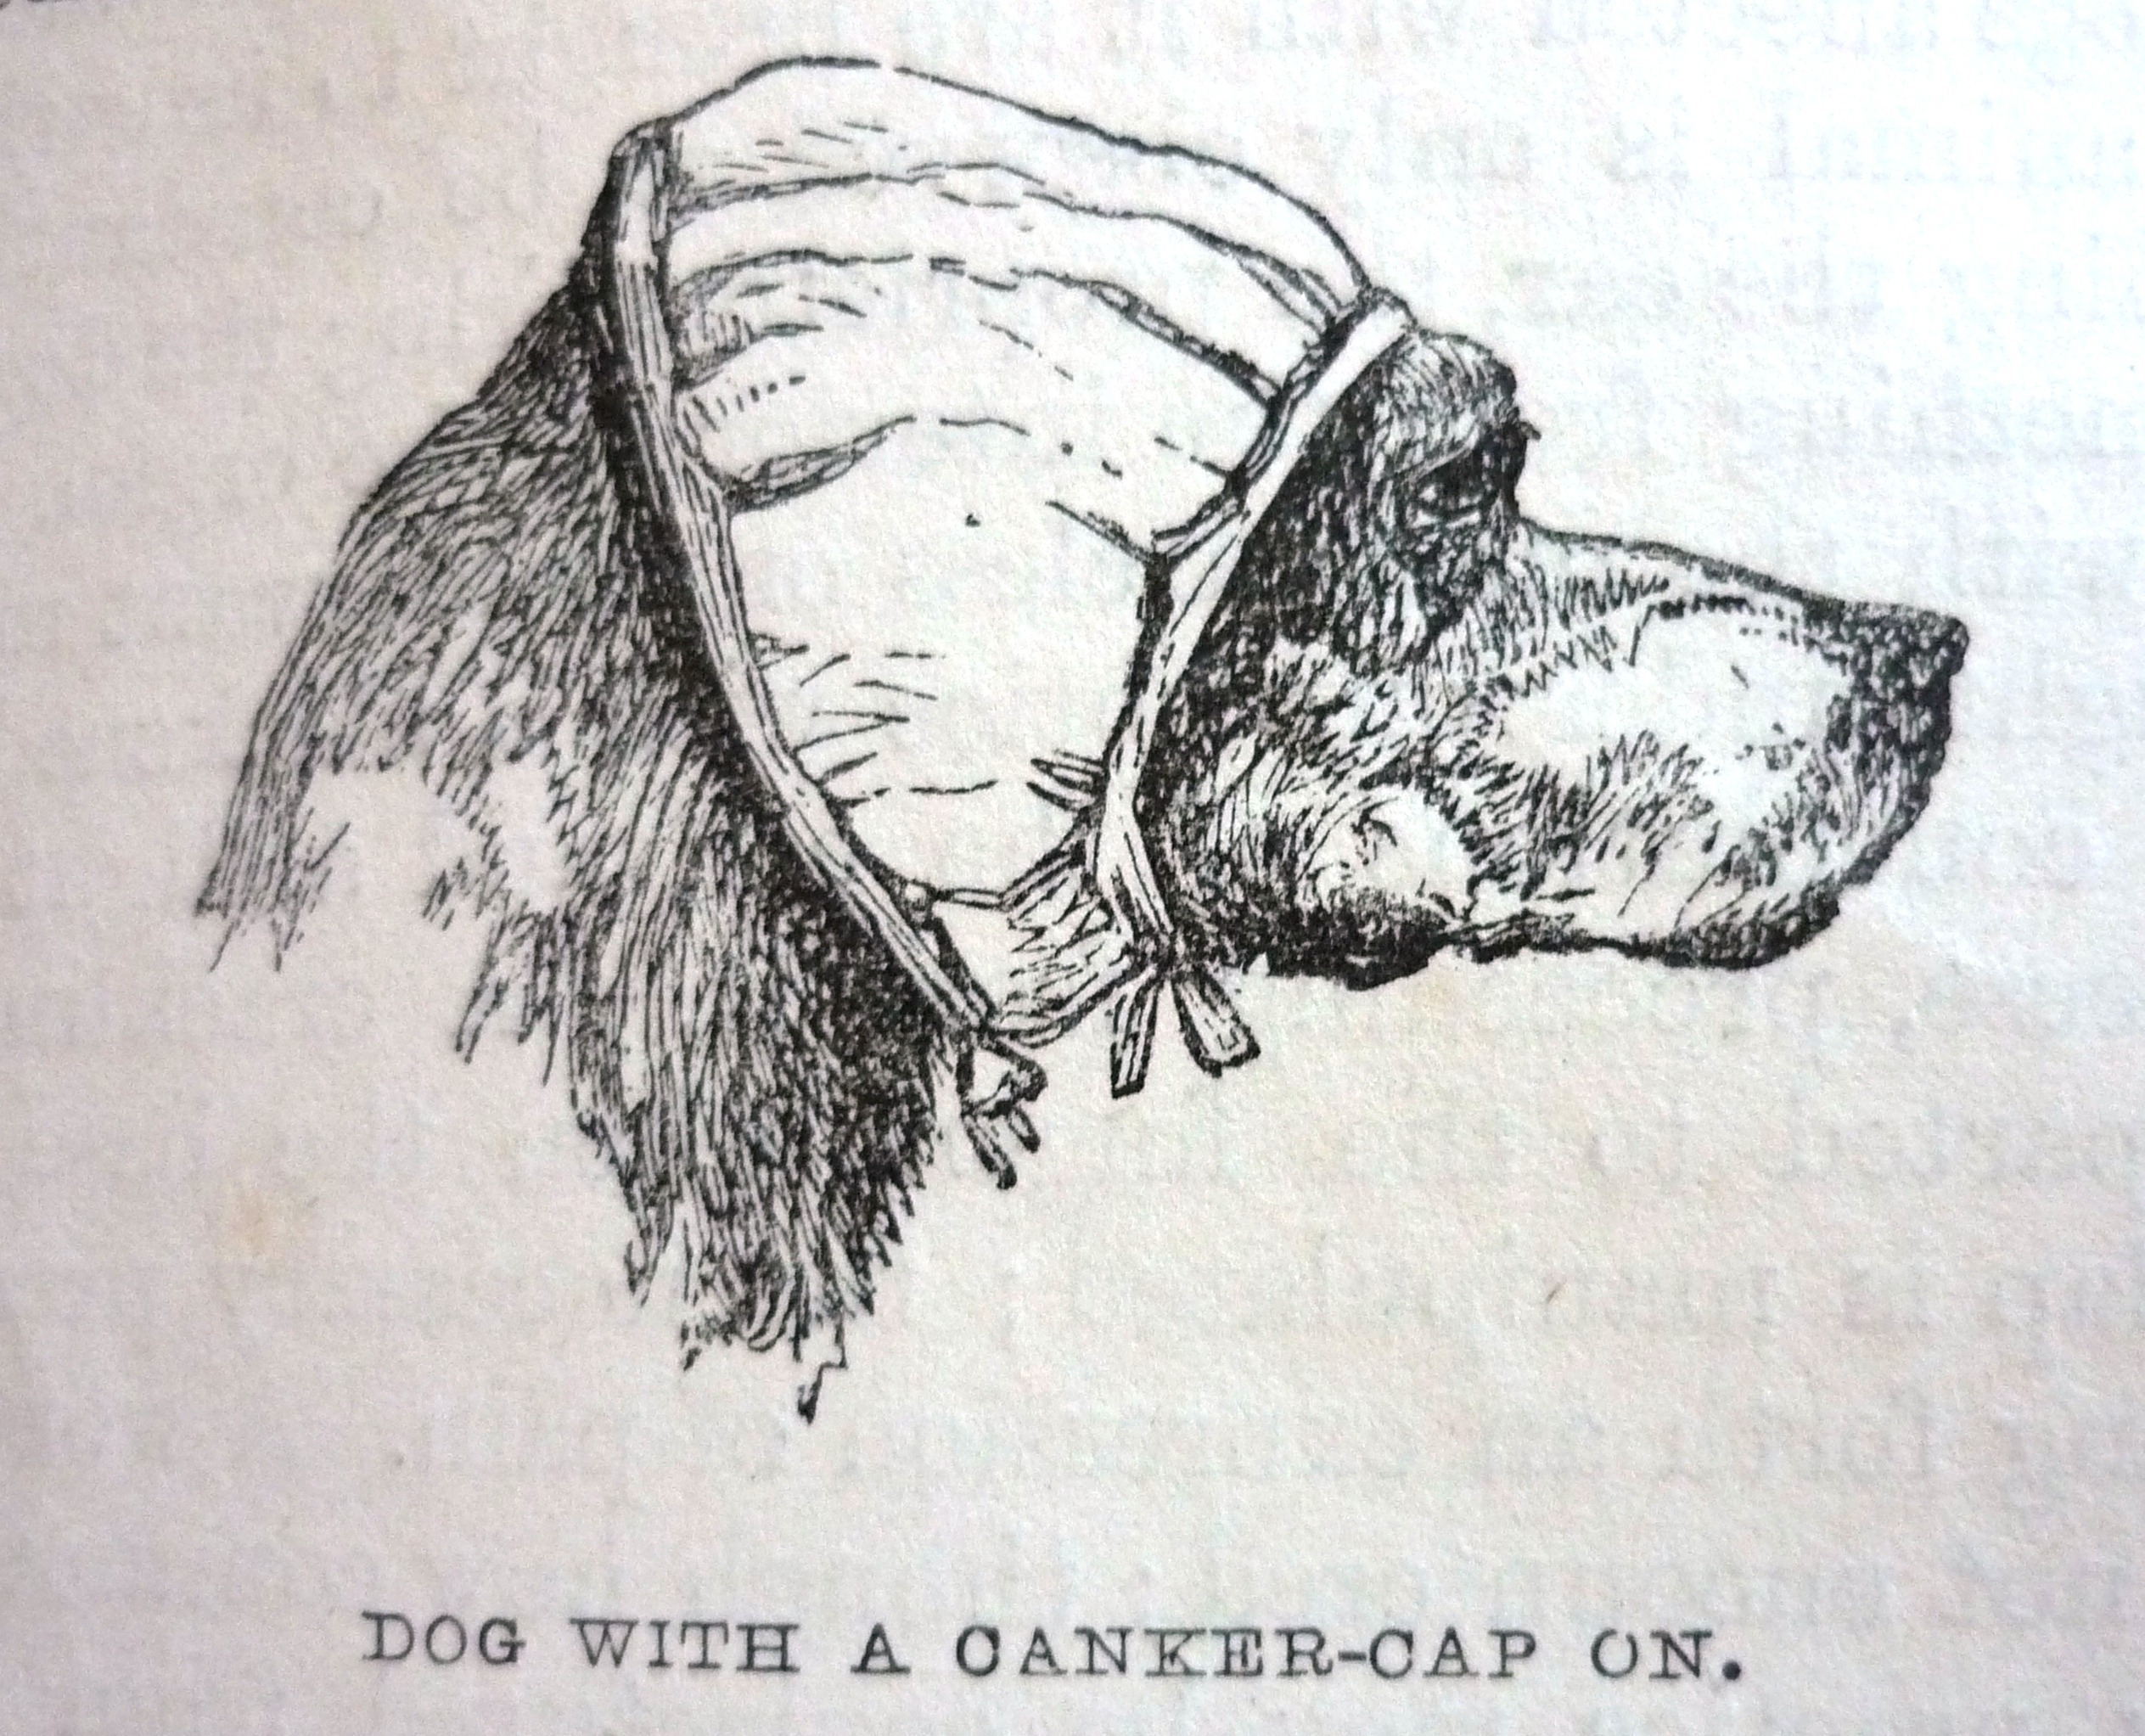 Edward Mayhew's Dogs: their management - Dog with canker cap on